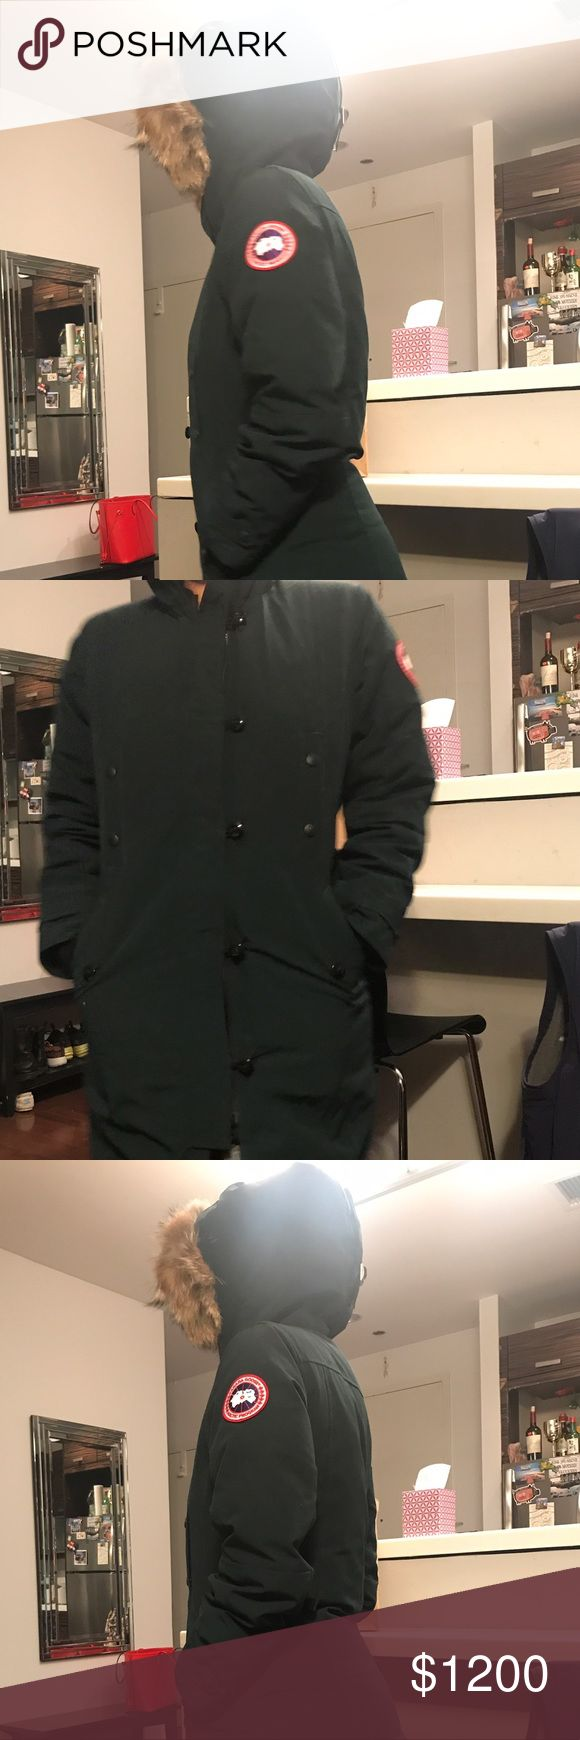 Canada Goose XS Brand new coat in perfect condition. This is the best quality version of Canada goose coat. Size XS. Flattering and slim fit Canada Goose Jackets & Coats Puffers